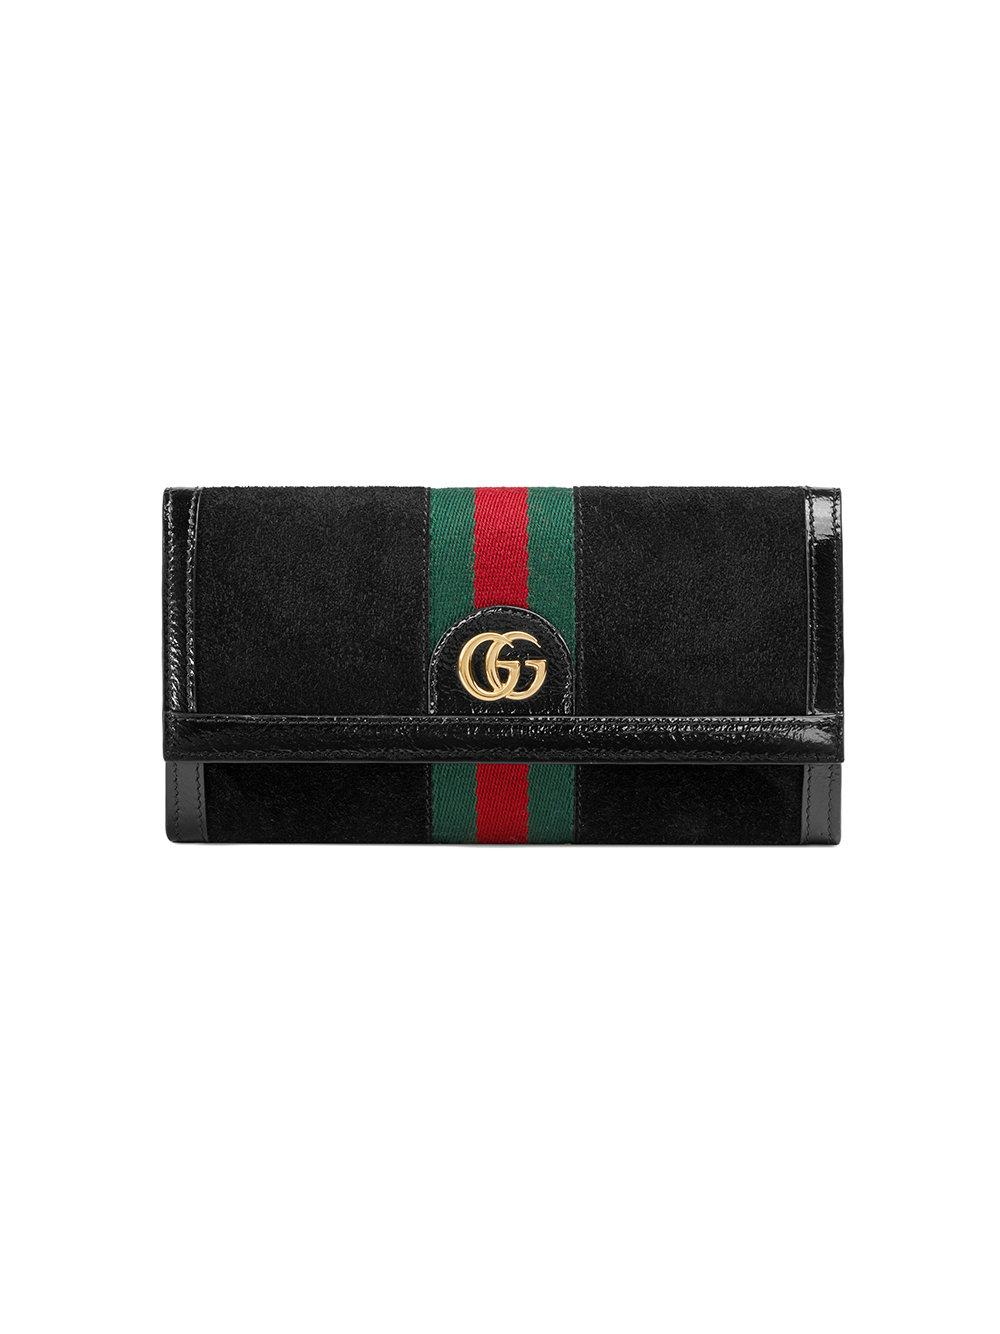 49bfb7c33dee Gucci Ophidia Continental Wallet - Farfetch In Black | ModeSens